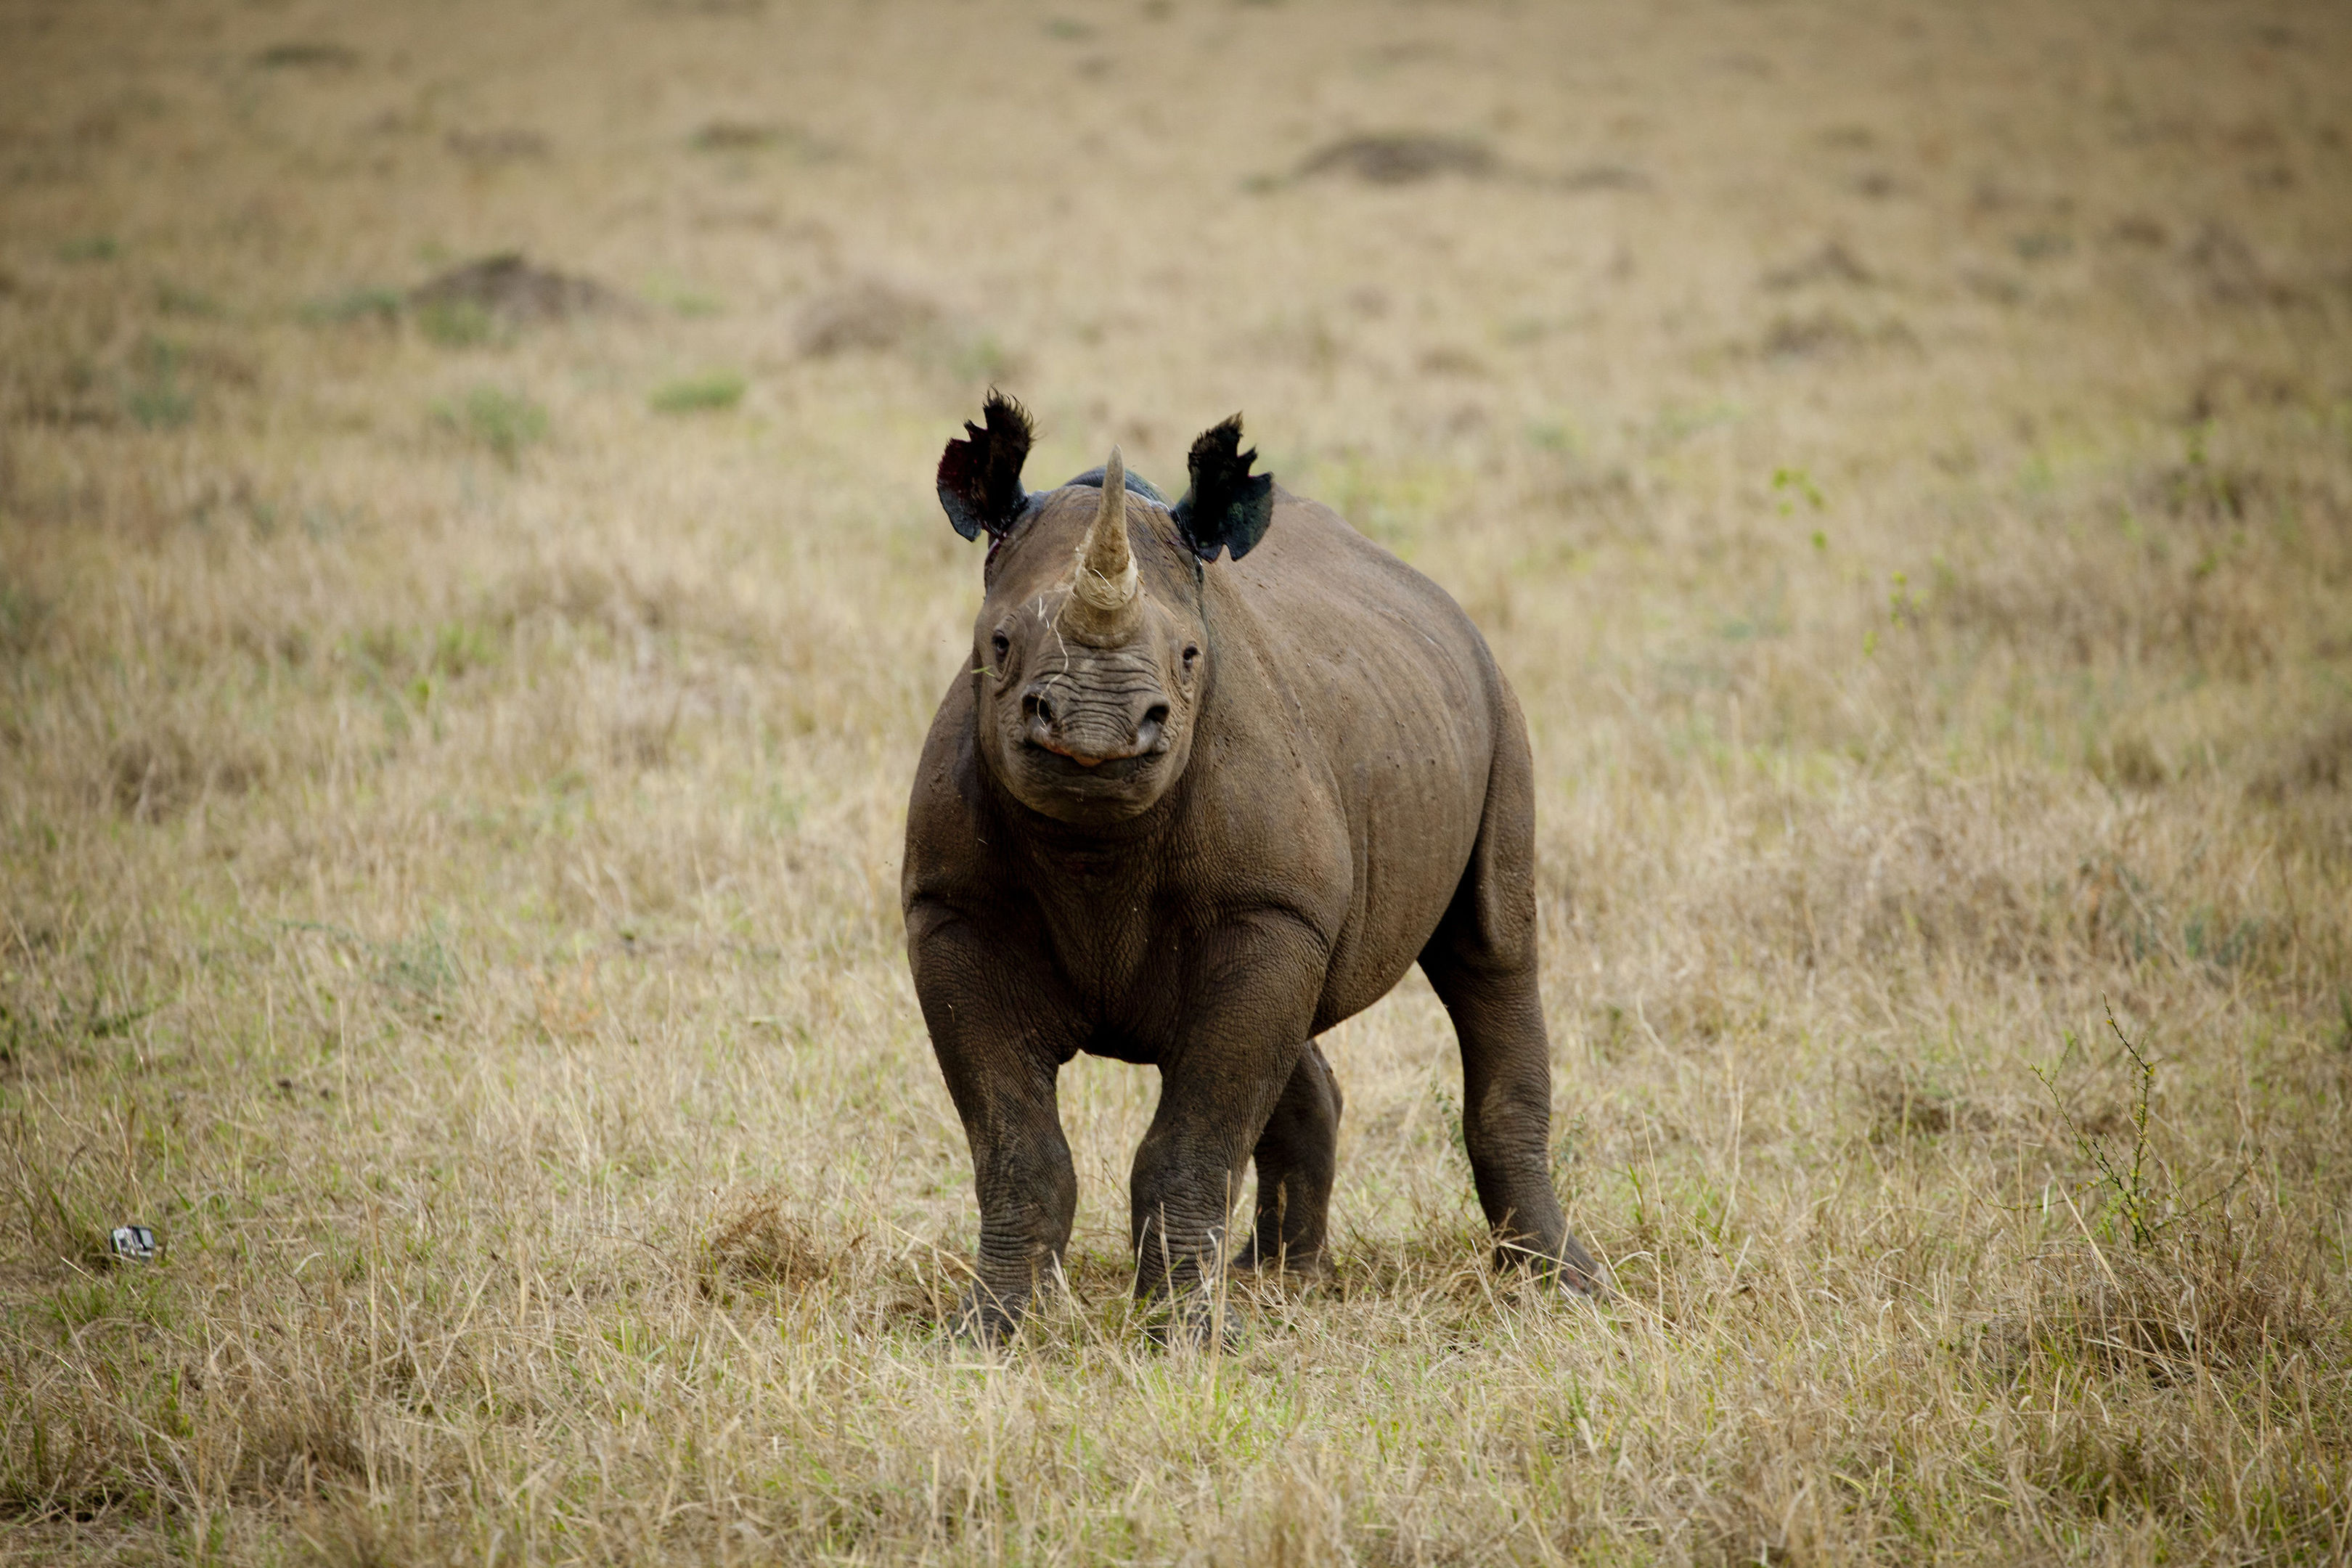 A rhino, which features on the conservation charity's list of 10 endangered species facing extinction due to illegal trade. (Greg Armfield/WWF/PA Wire)